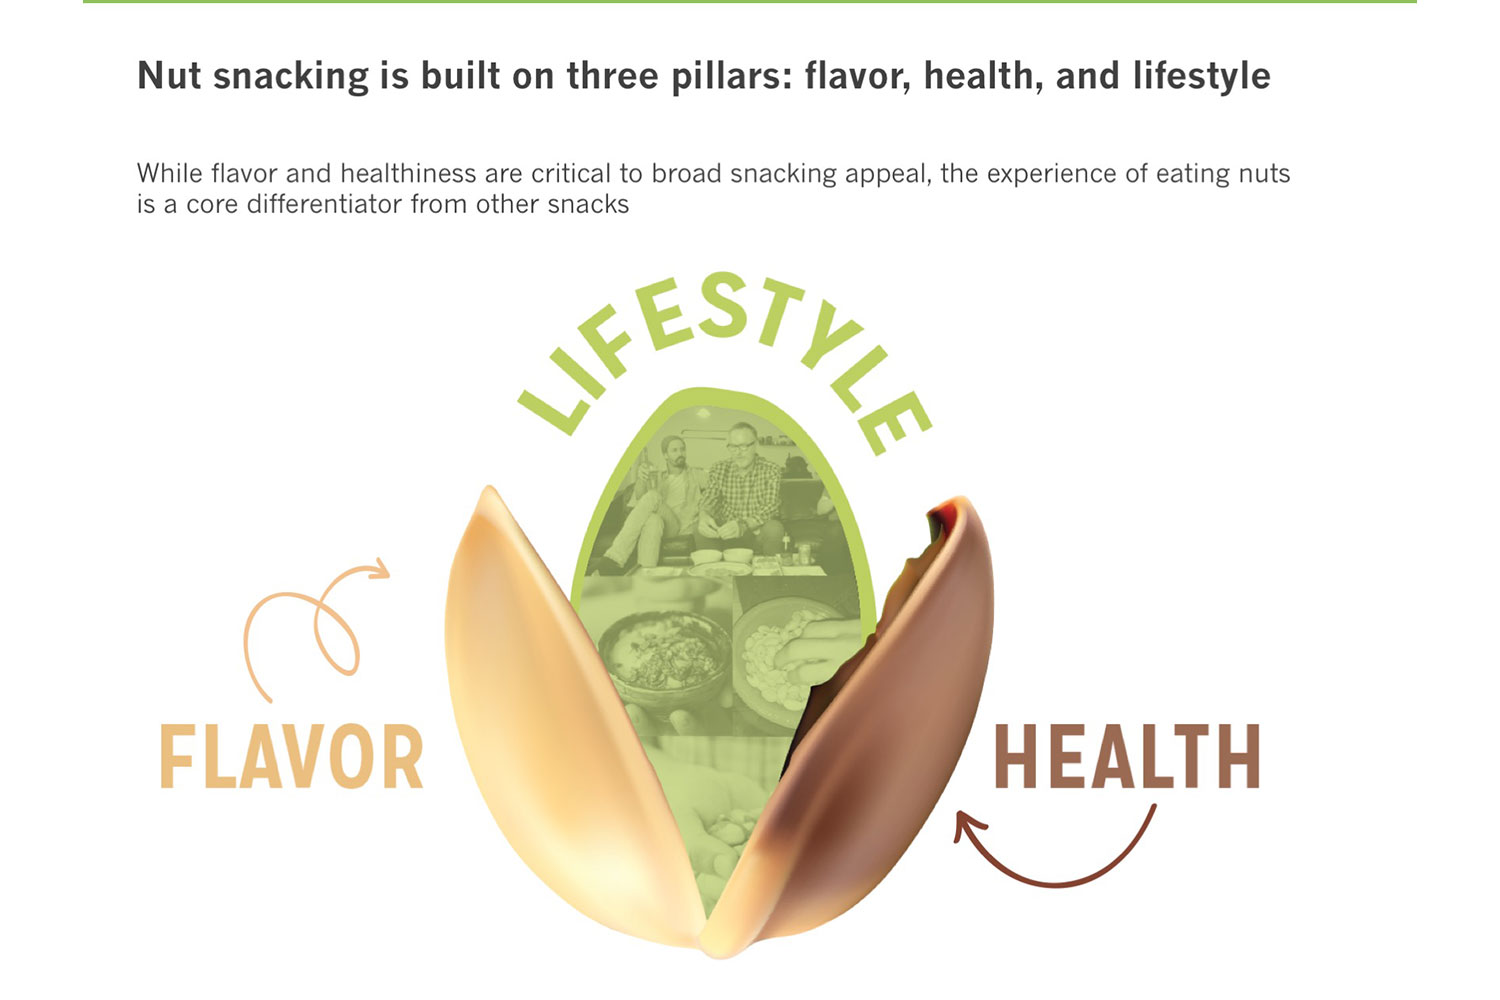 Nut snacking is built on three pillars: flavor, health, and lifestyle